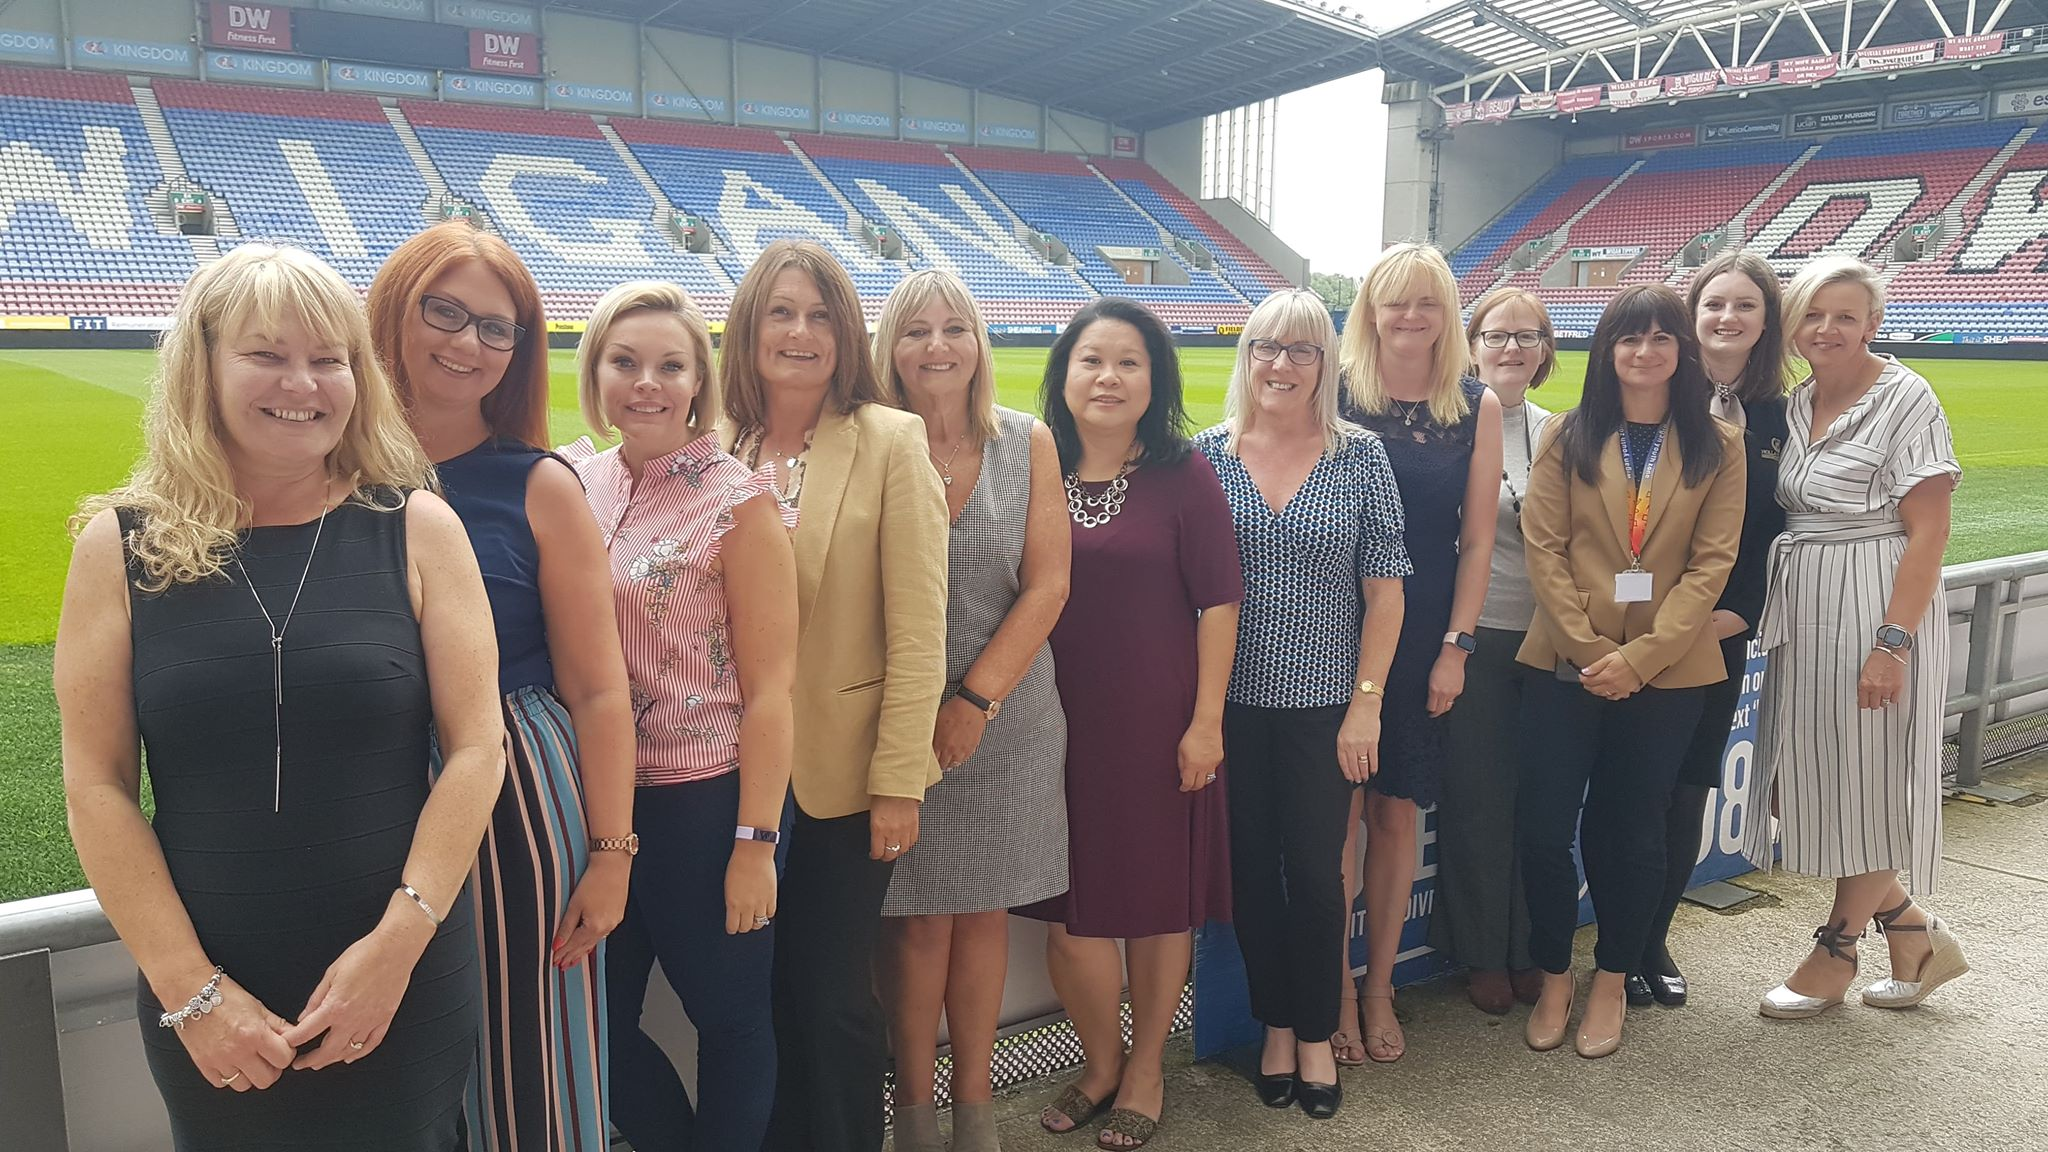 Wigan entrepreneur named vice president of Greater Manchester Chamber of Commerce, Wigan division